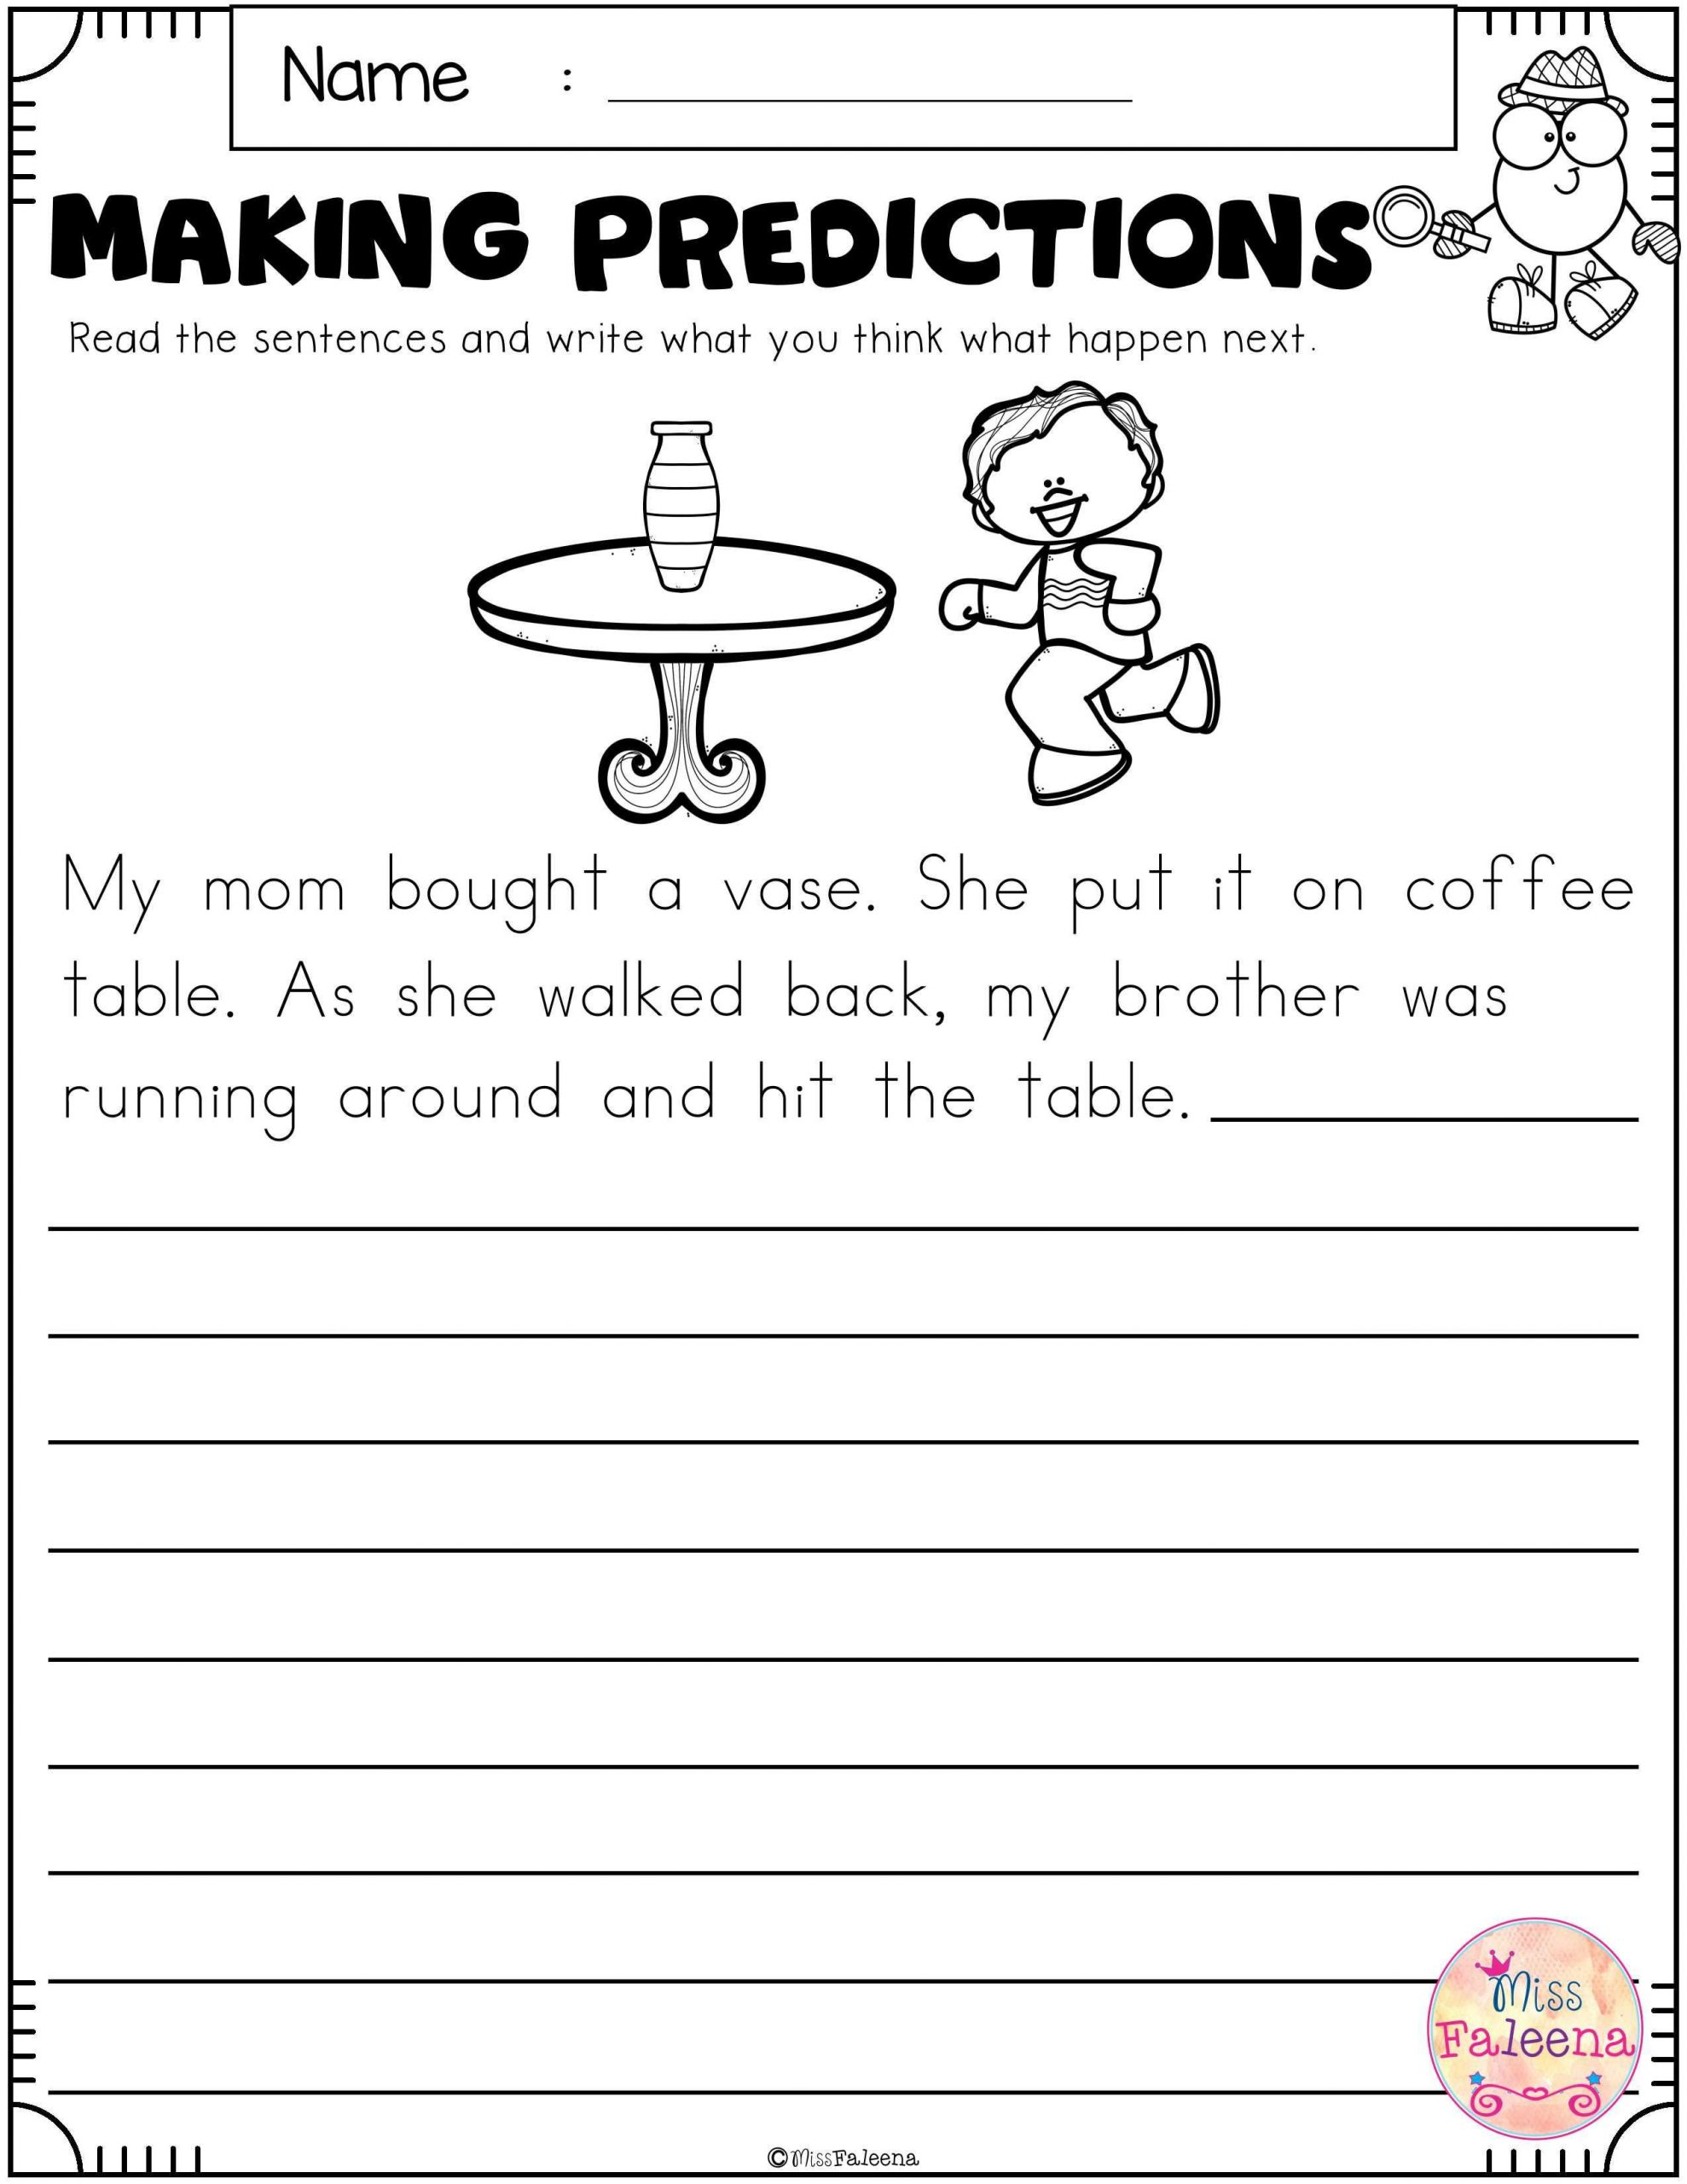 Prediction Worksheets for 2nd Grade Free Making Predictions with Images